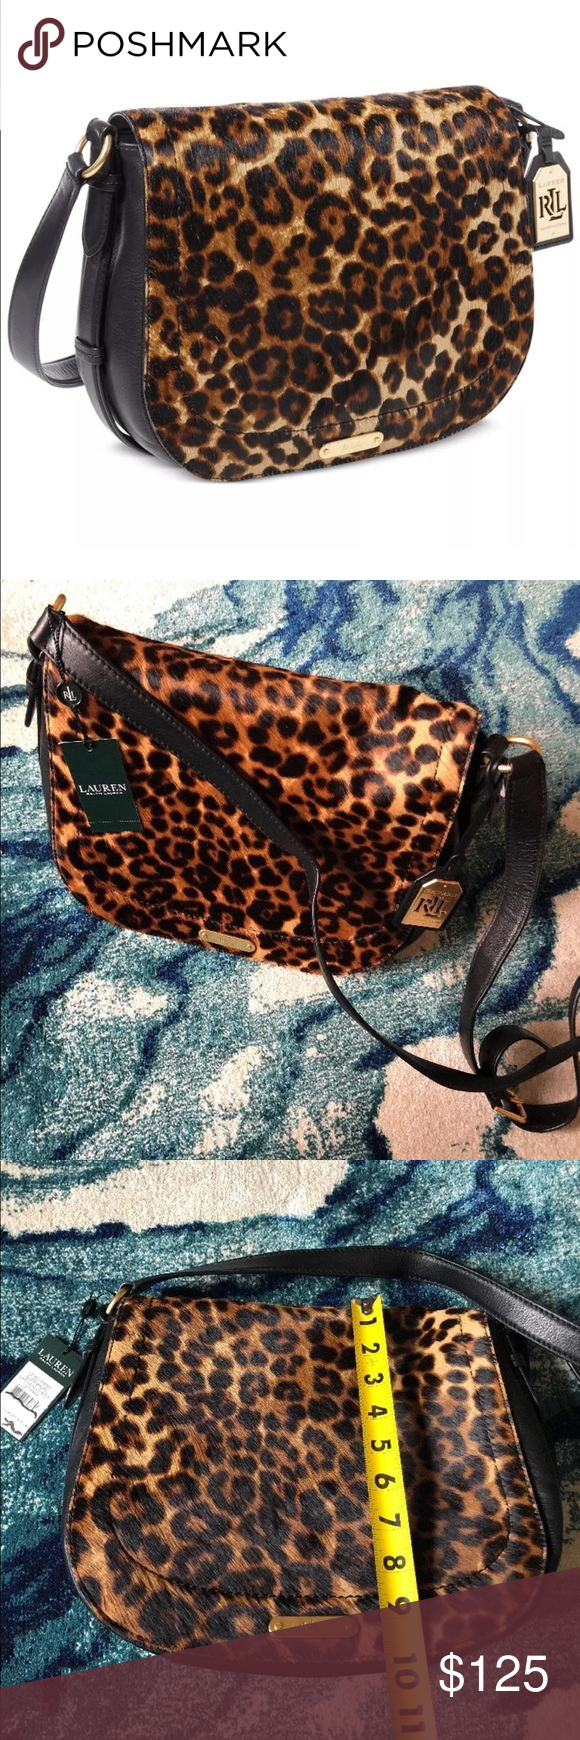 NWT Lauren Ralph Lauren Glennmore larisa bag black New with tags Lauren  Ralph Lauren glennmore Larisa messenger saddle medium bag. Leopard print  calf hair. 54f92a75d81ff